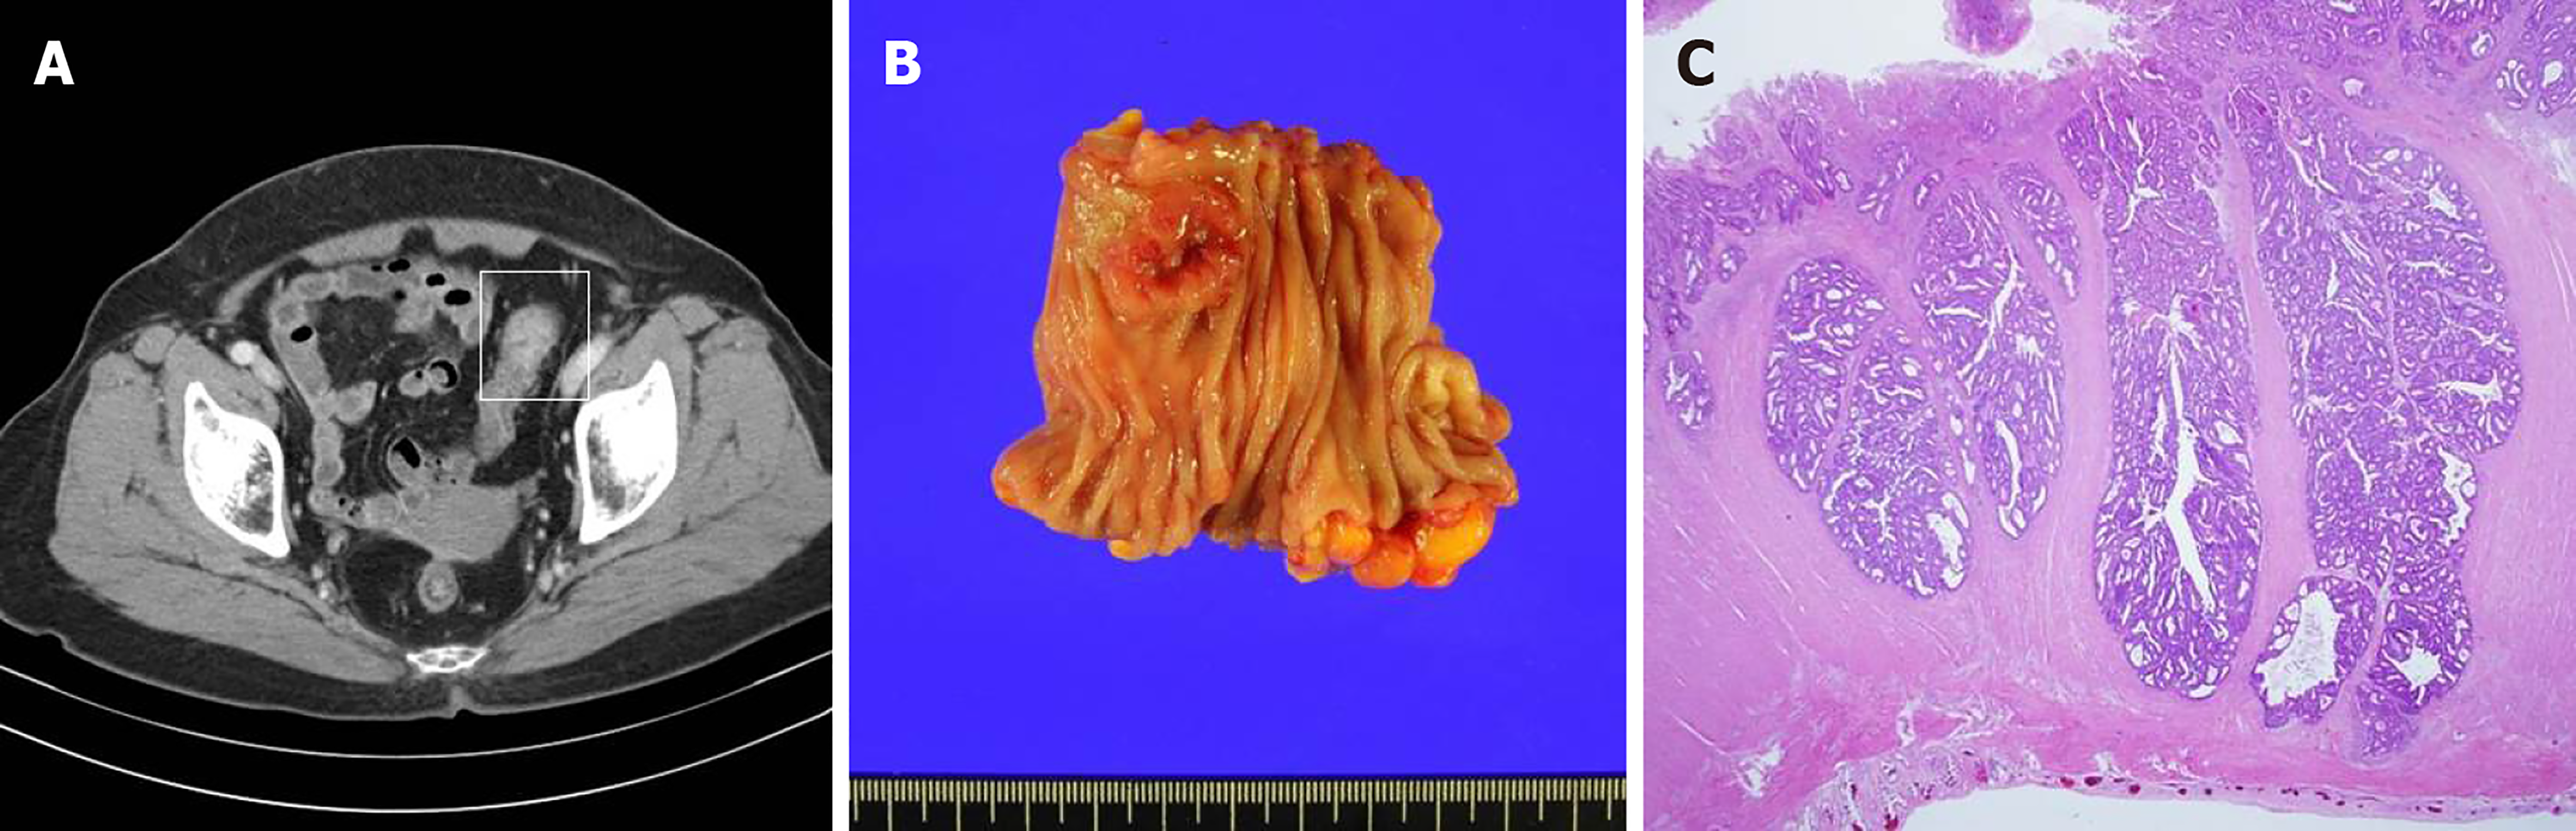 Isolated Vaginal Metastasis From Stage I Colon Cancer A Case Report